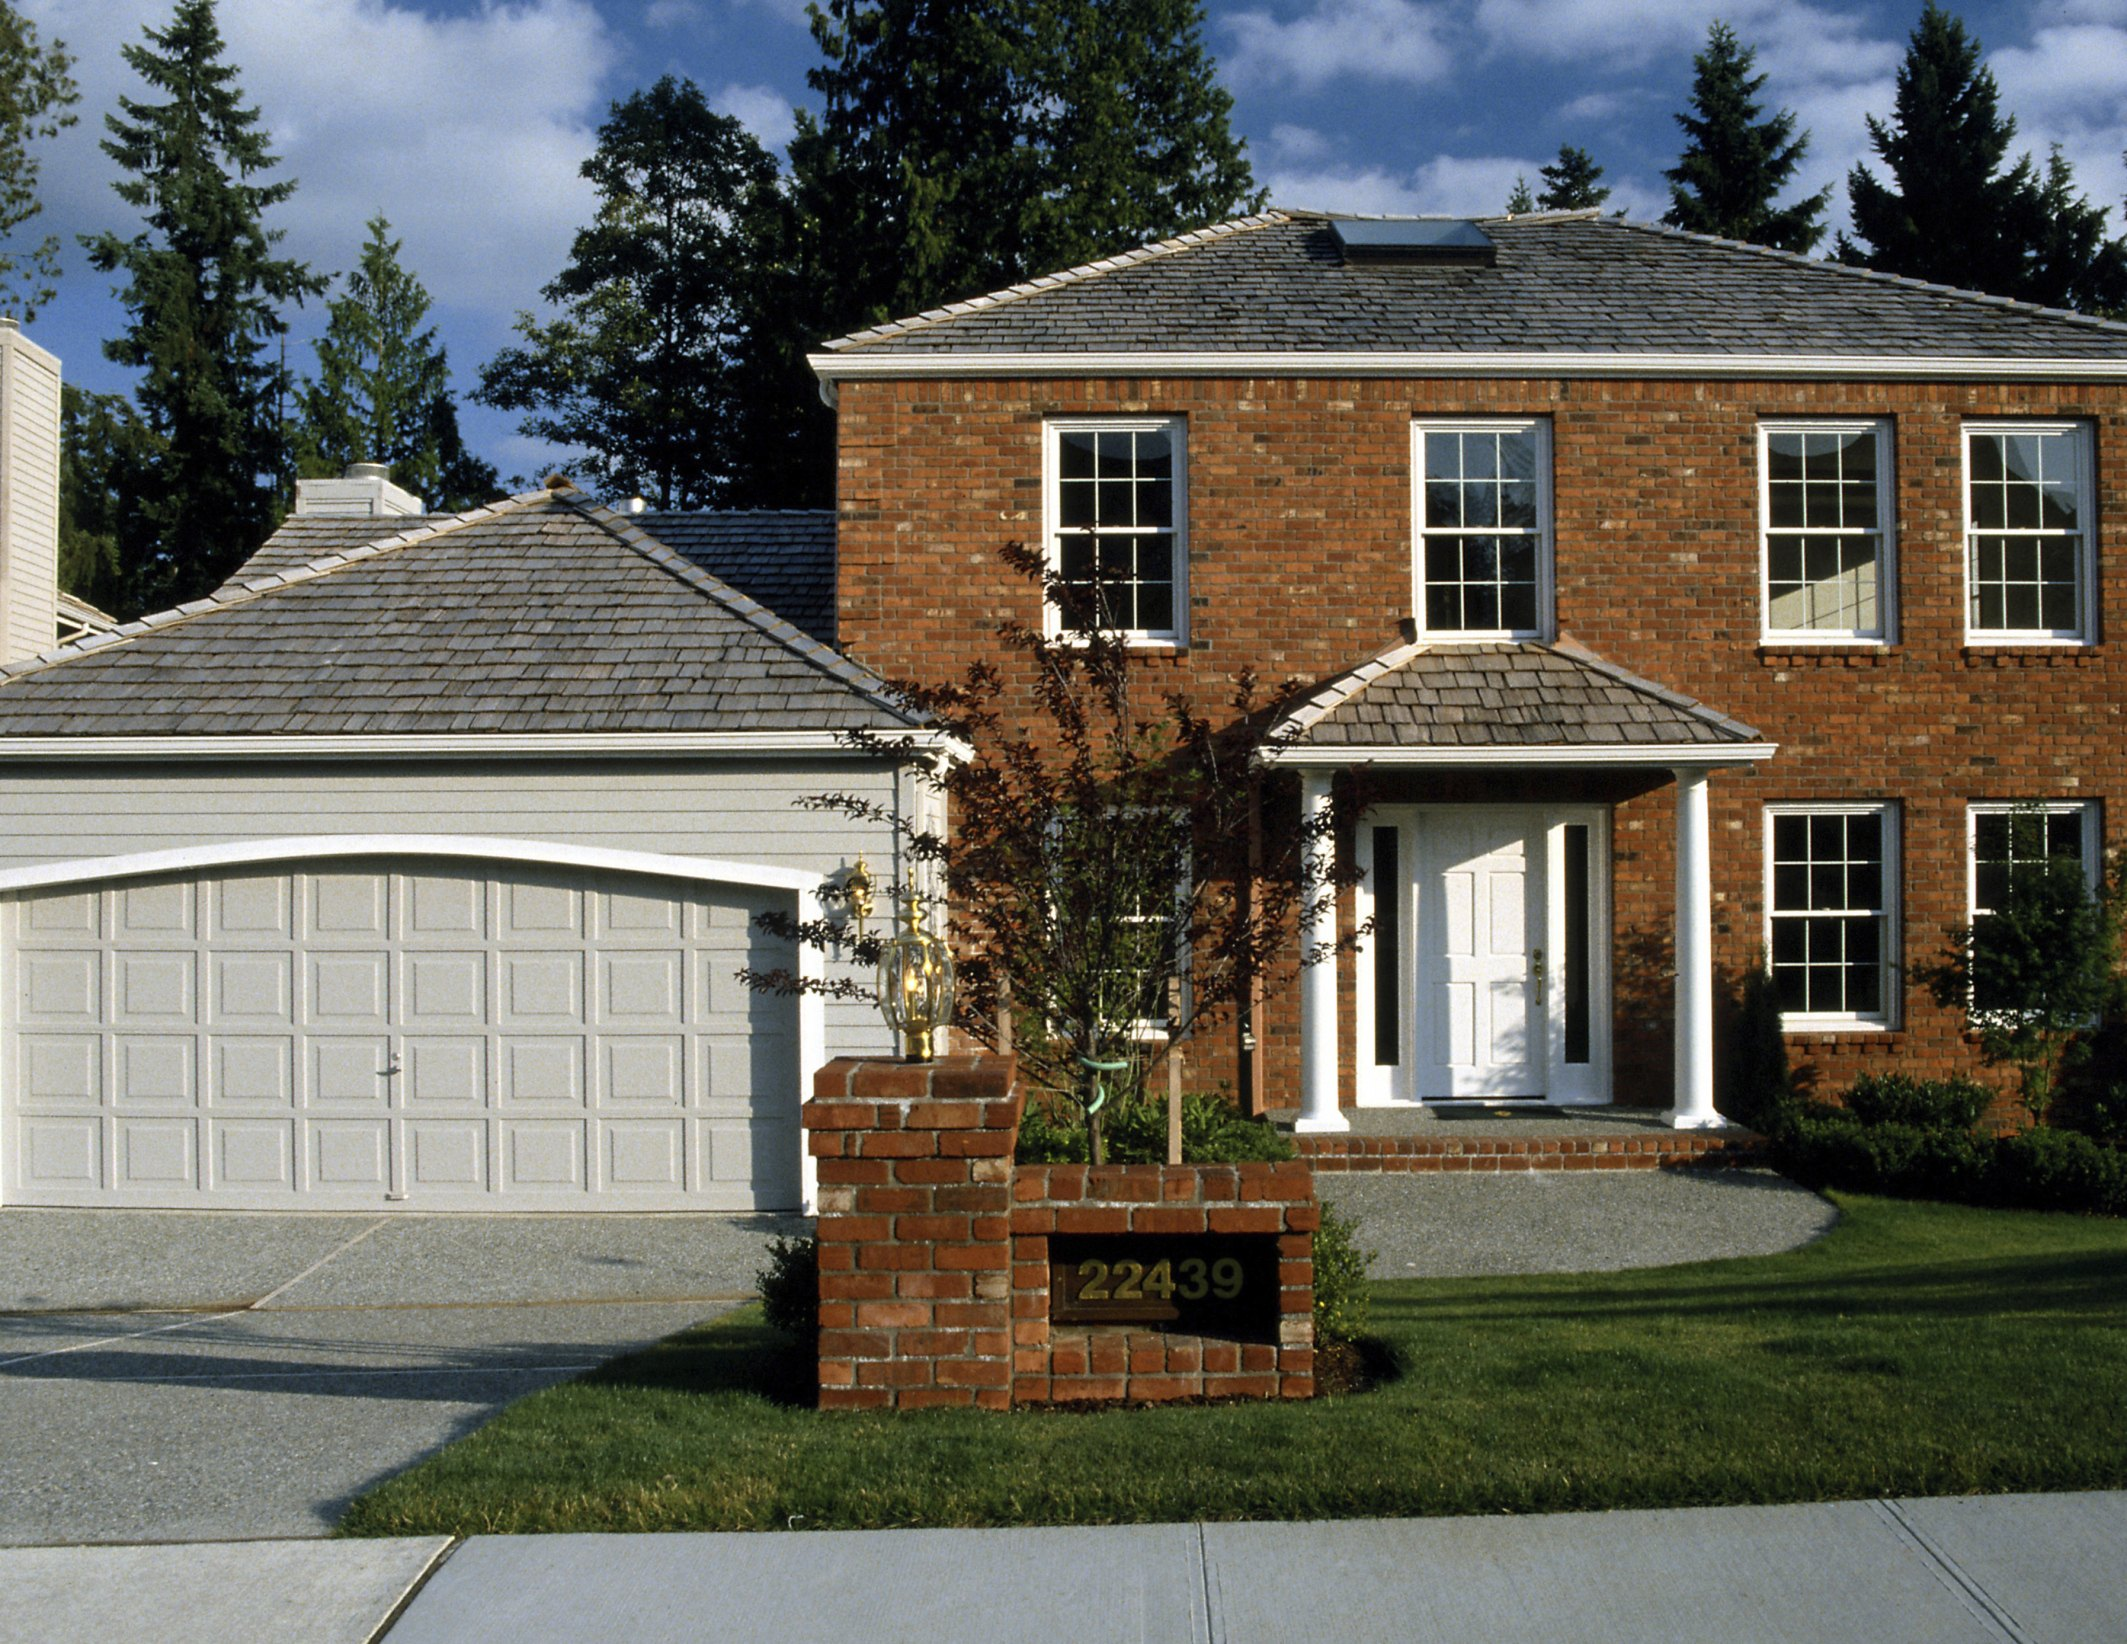 Ideas for a Breezeway to a Detached Garage with Pictures  eHow